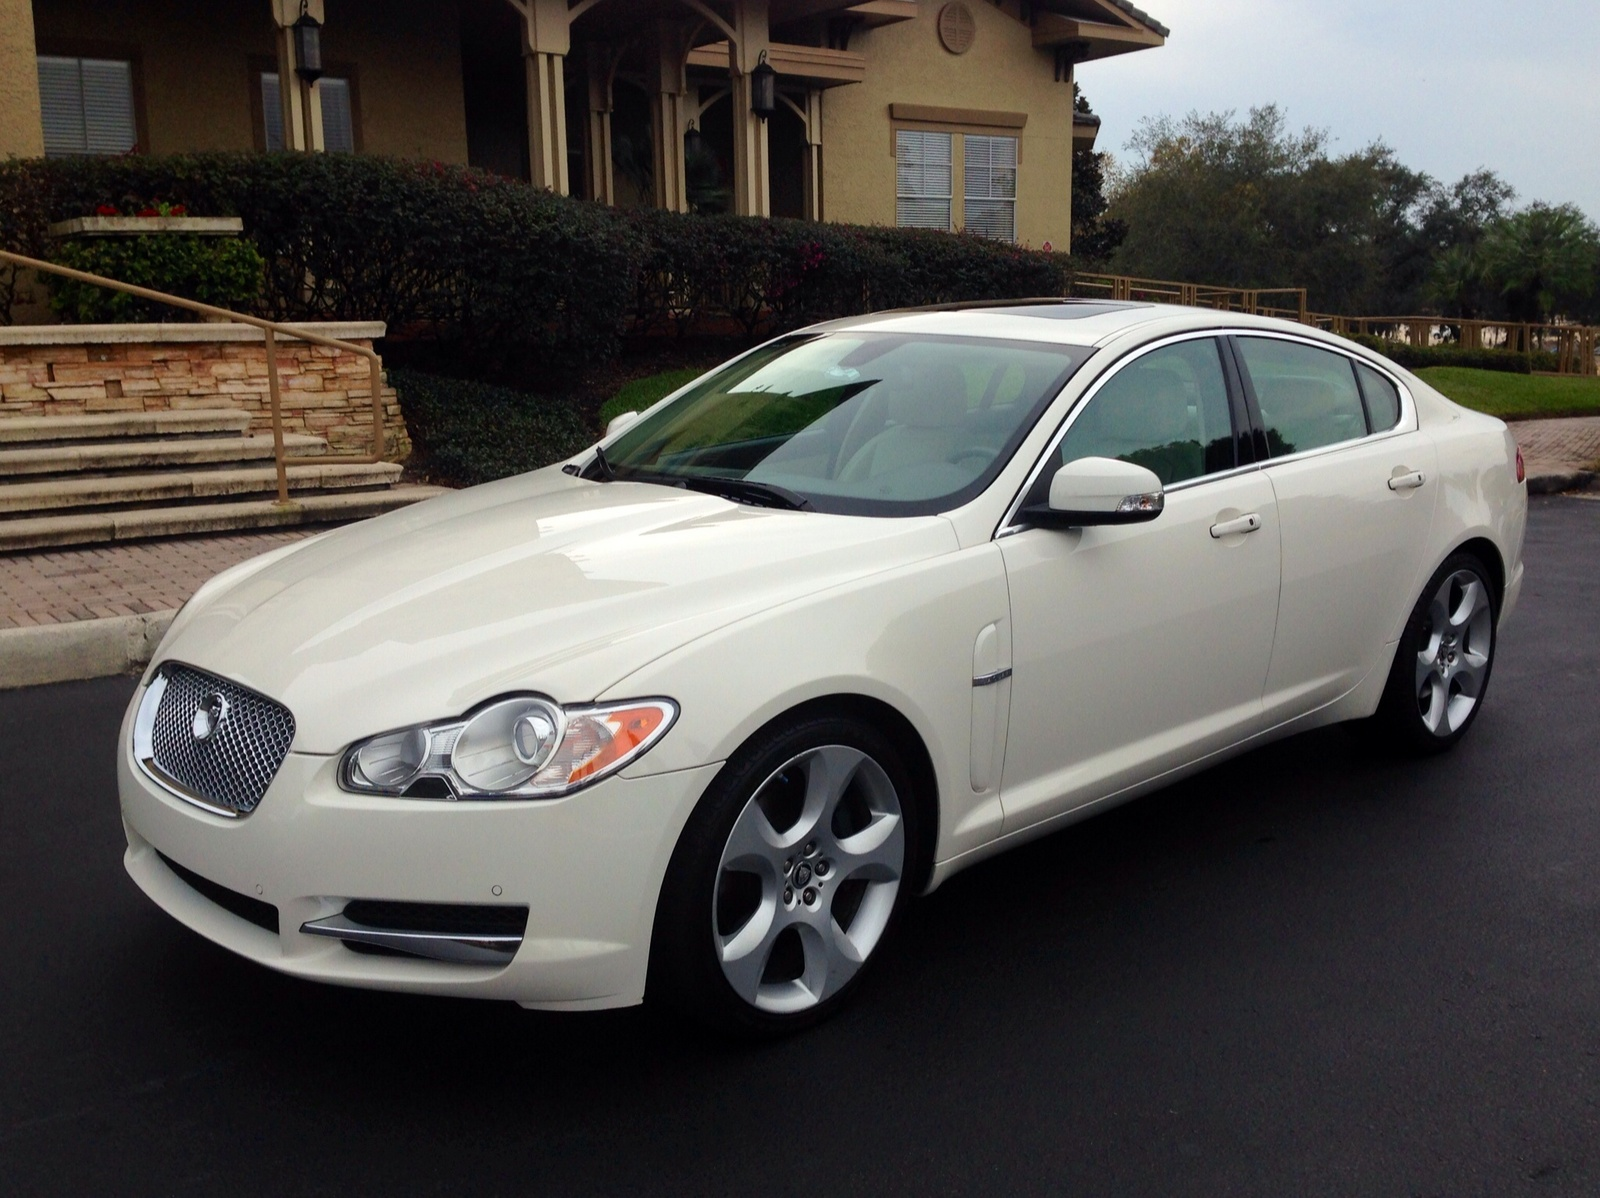 service manual 2009 jaguar xf removal service manual 2009 jaguar xf door removal service. Black Bedroom Furniture Sets. Home Design Ideas